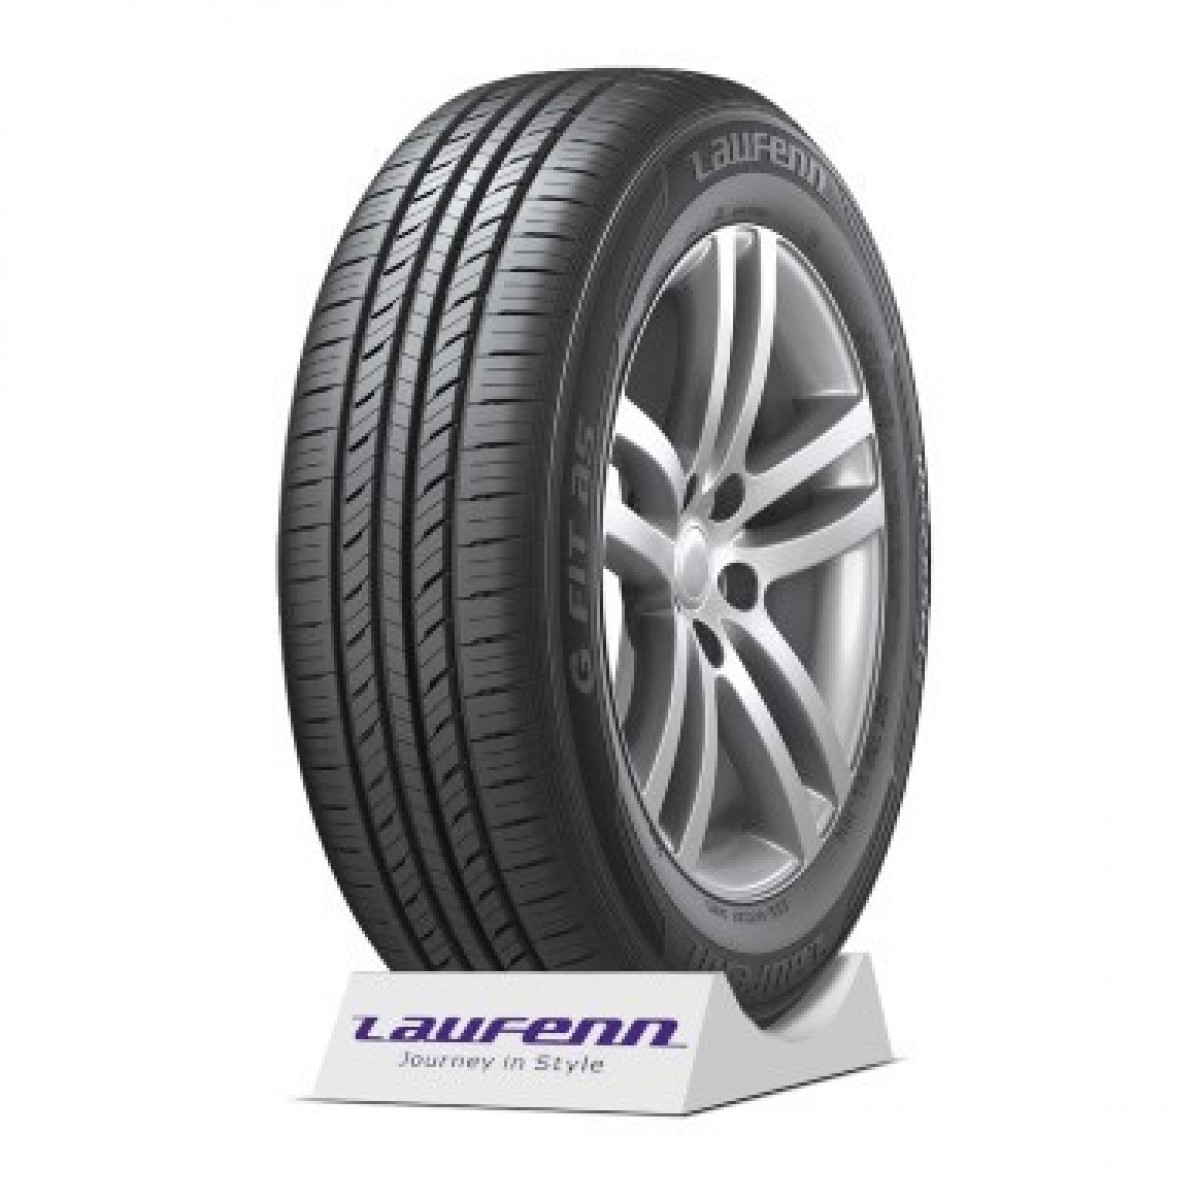 Llantas 205/55 R16  G FIT AS LAUFENN Origen indonesia